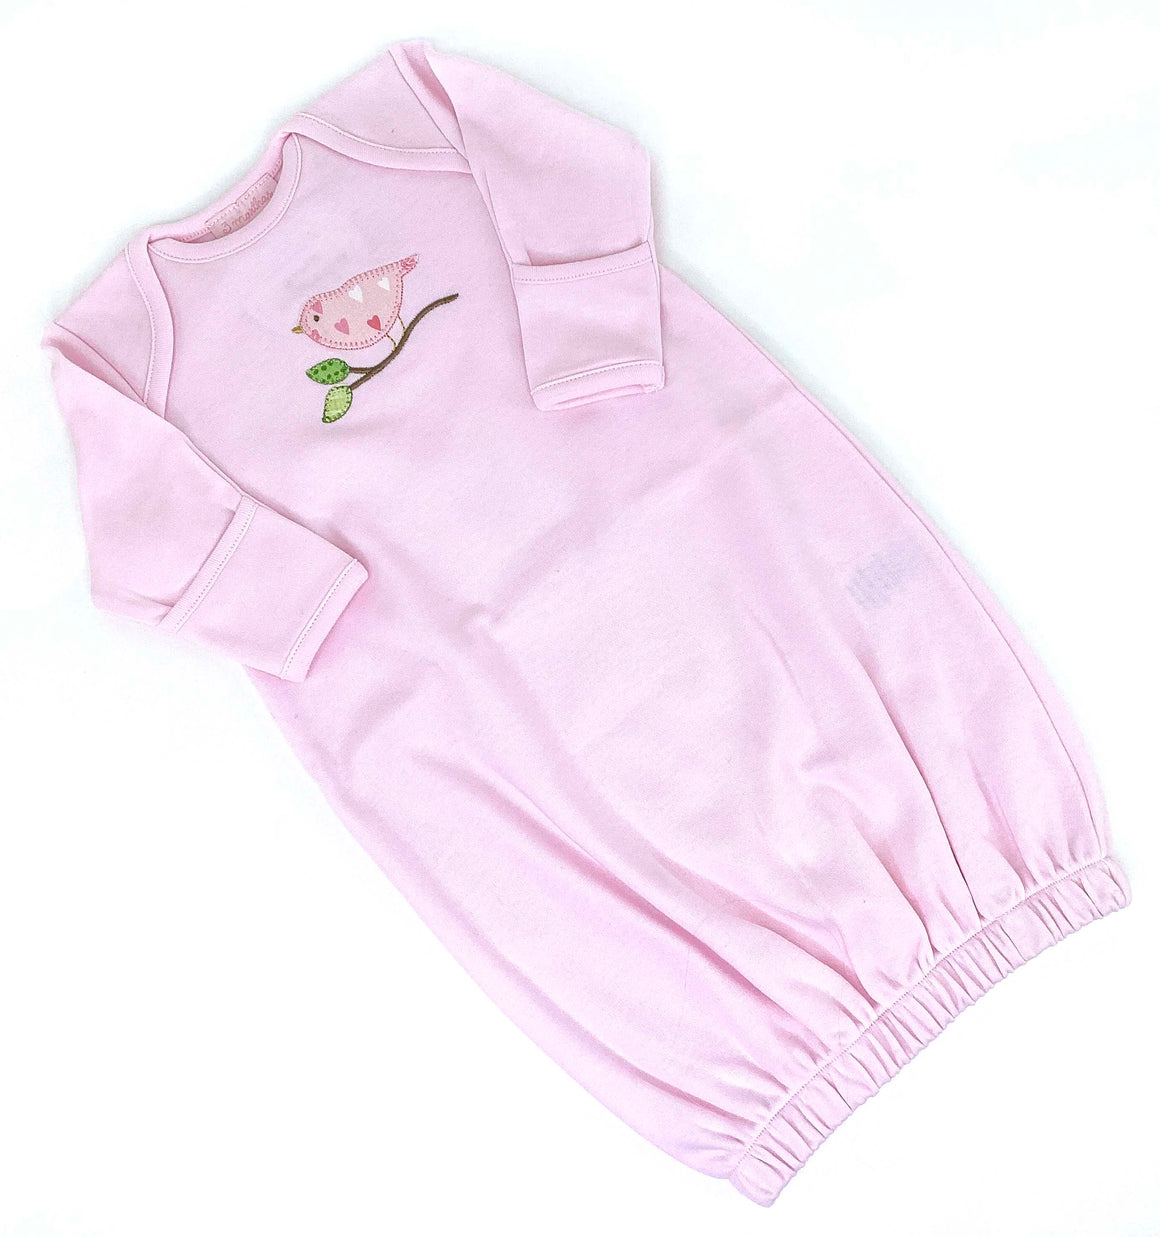 Bird Newborn Gown - The Preppy Bunny